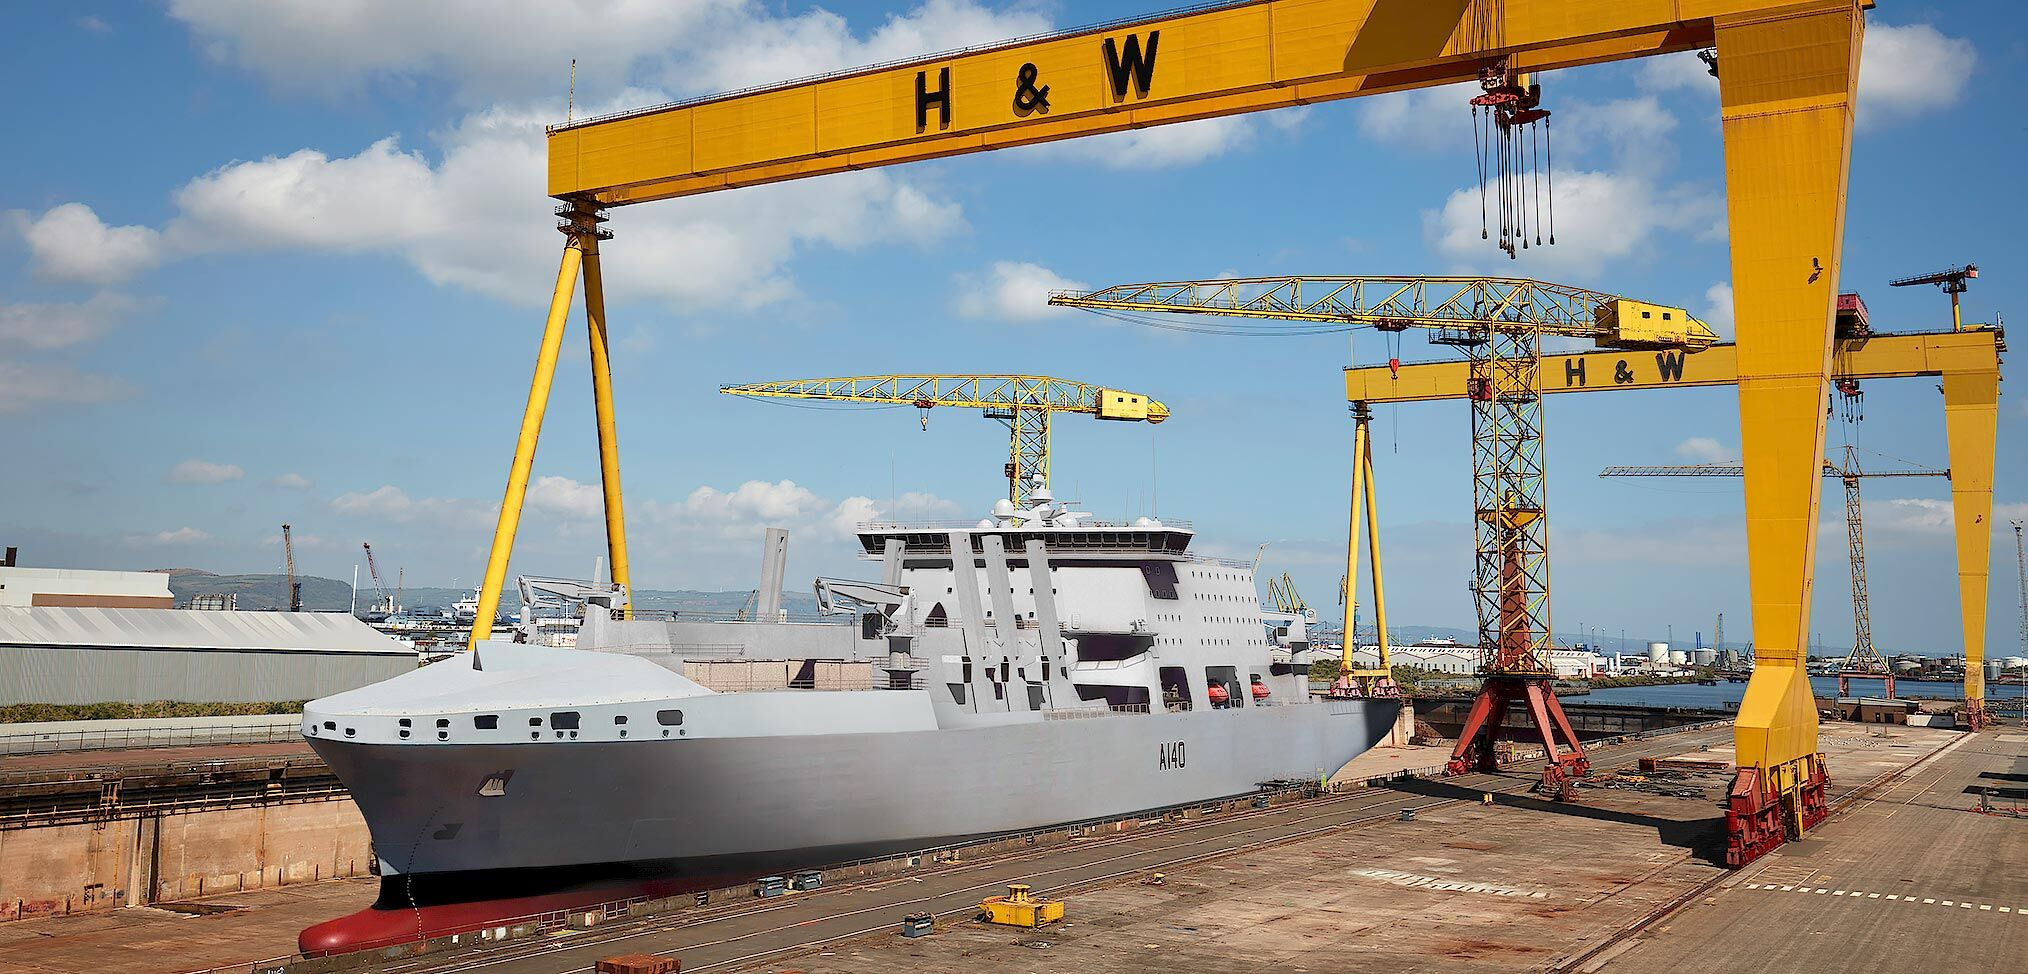 British-Spanish team bid to build the Fleet Solid Support ship